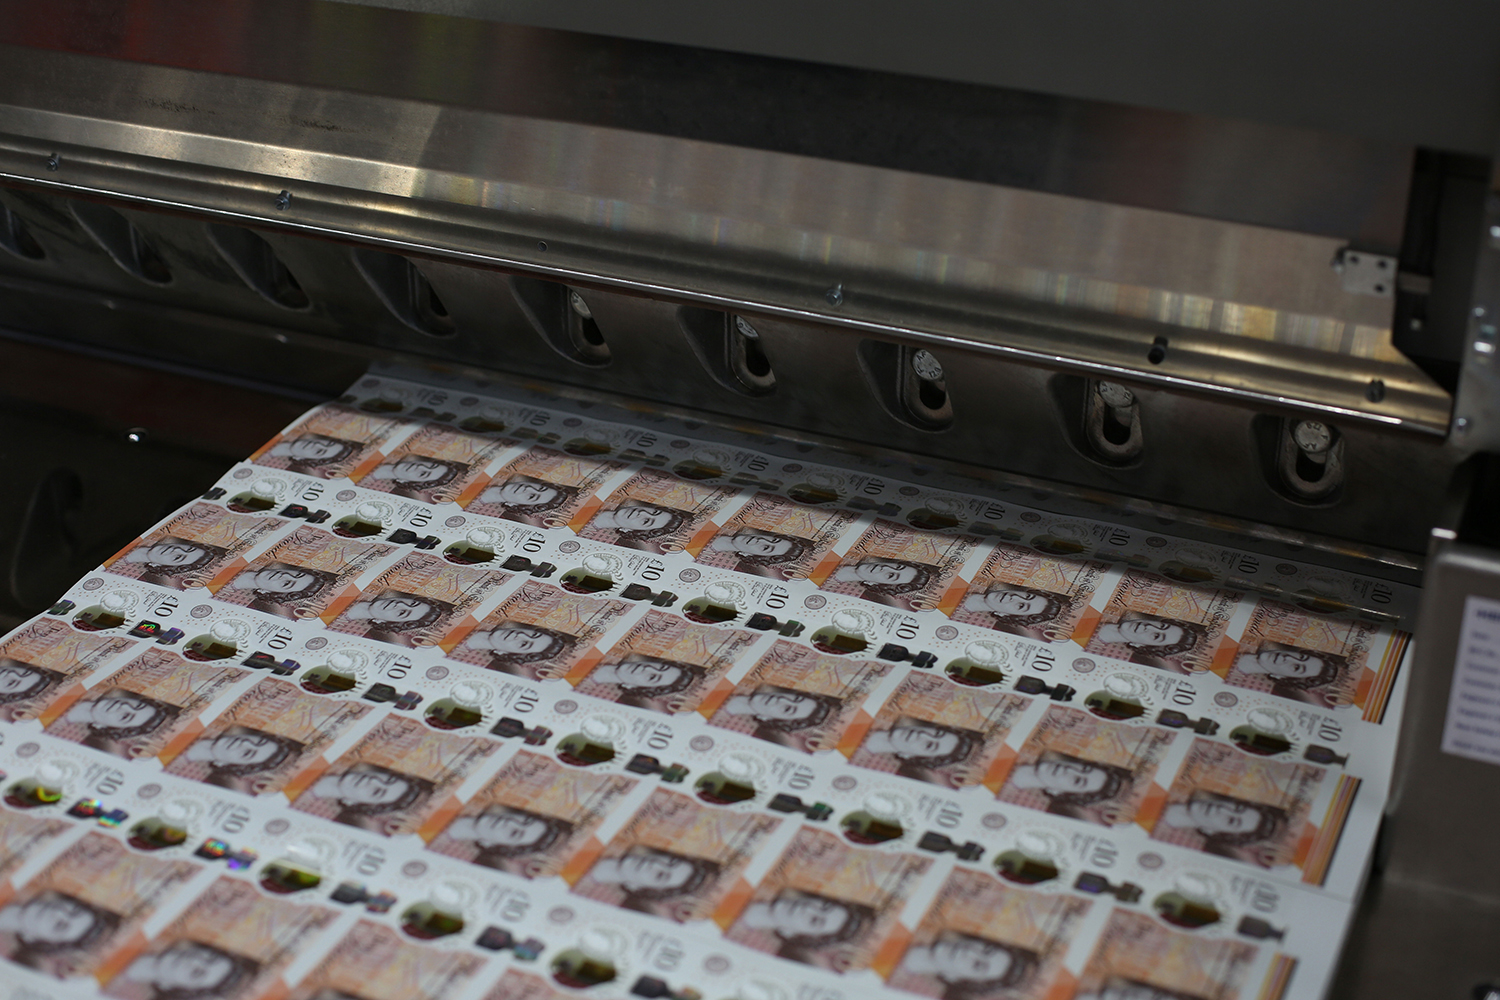 Production of the new £10 note